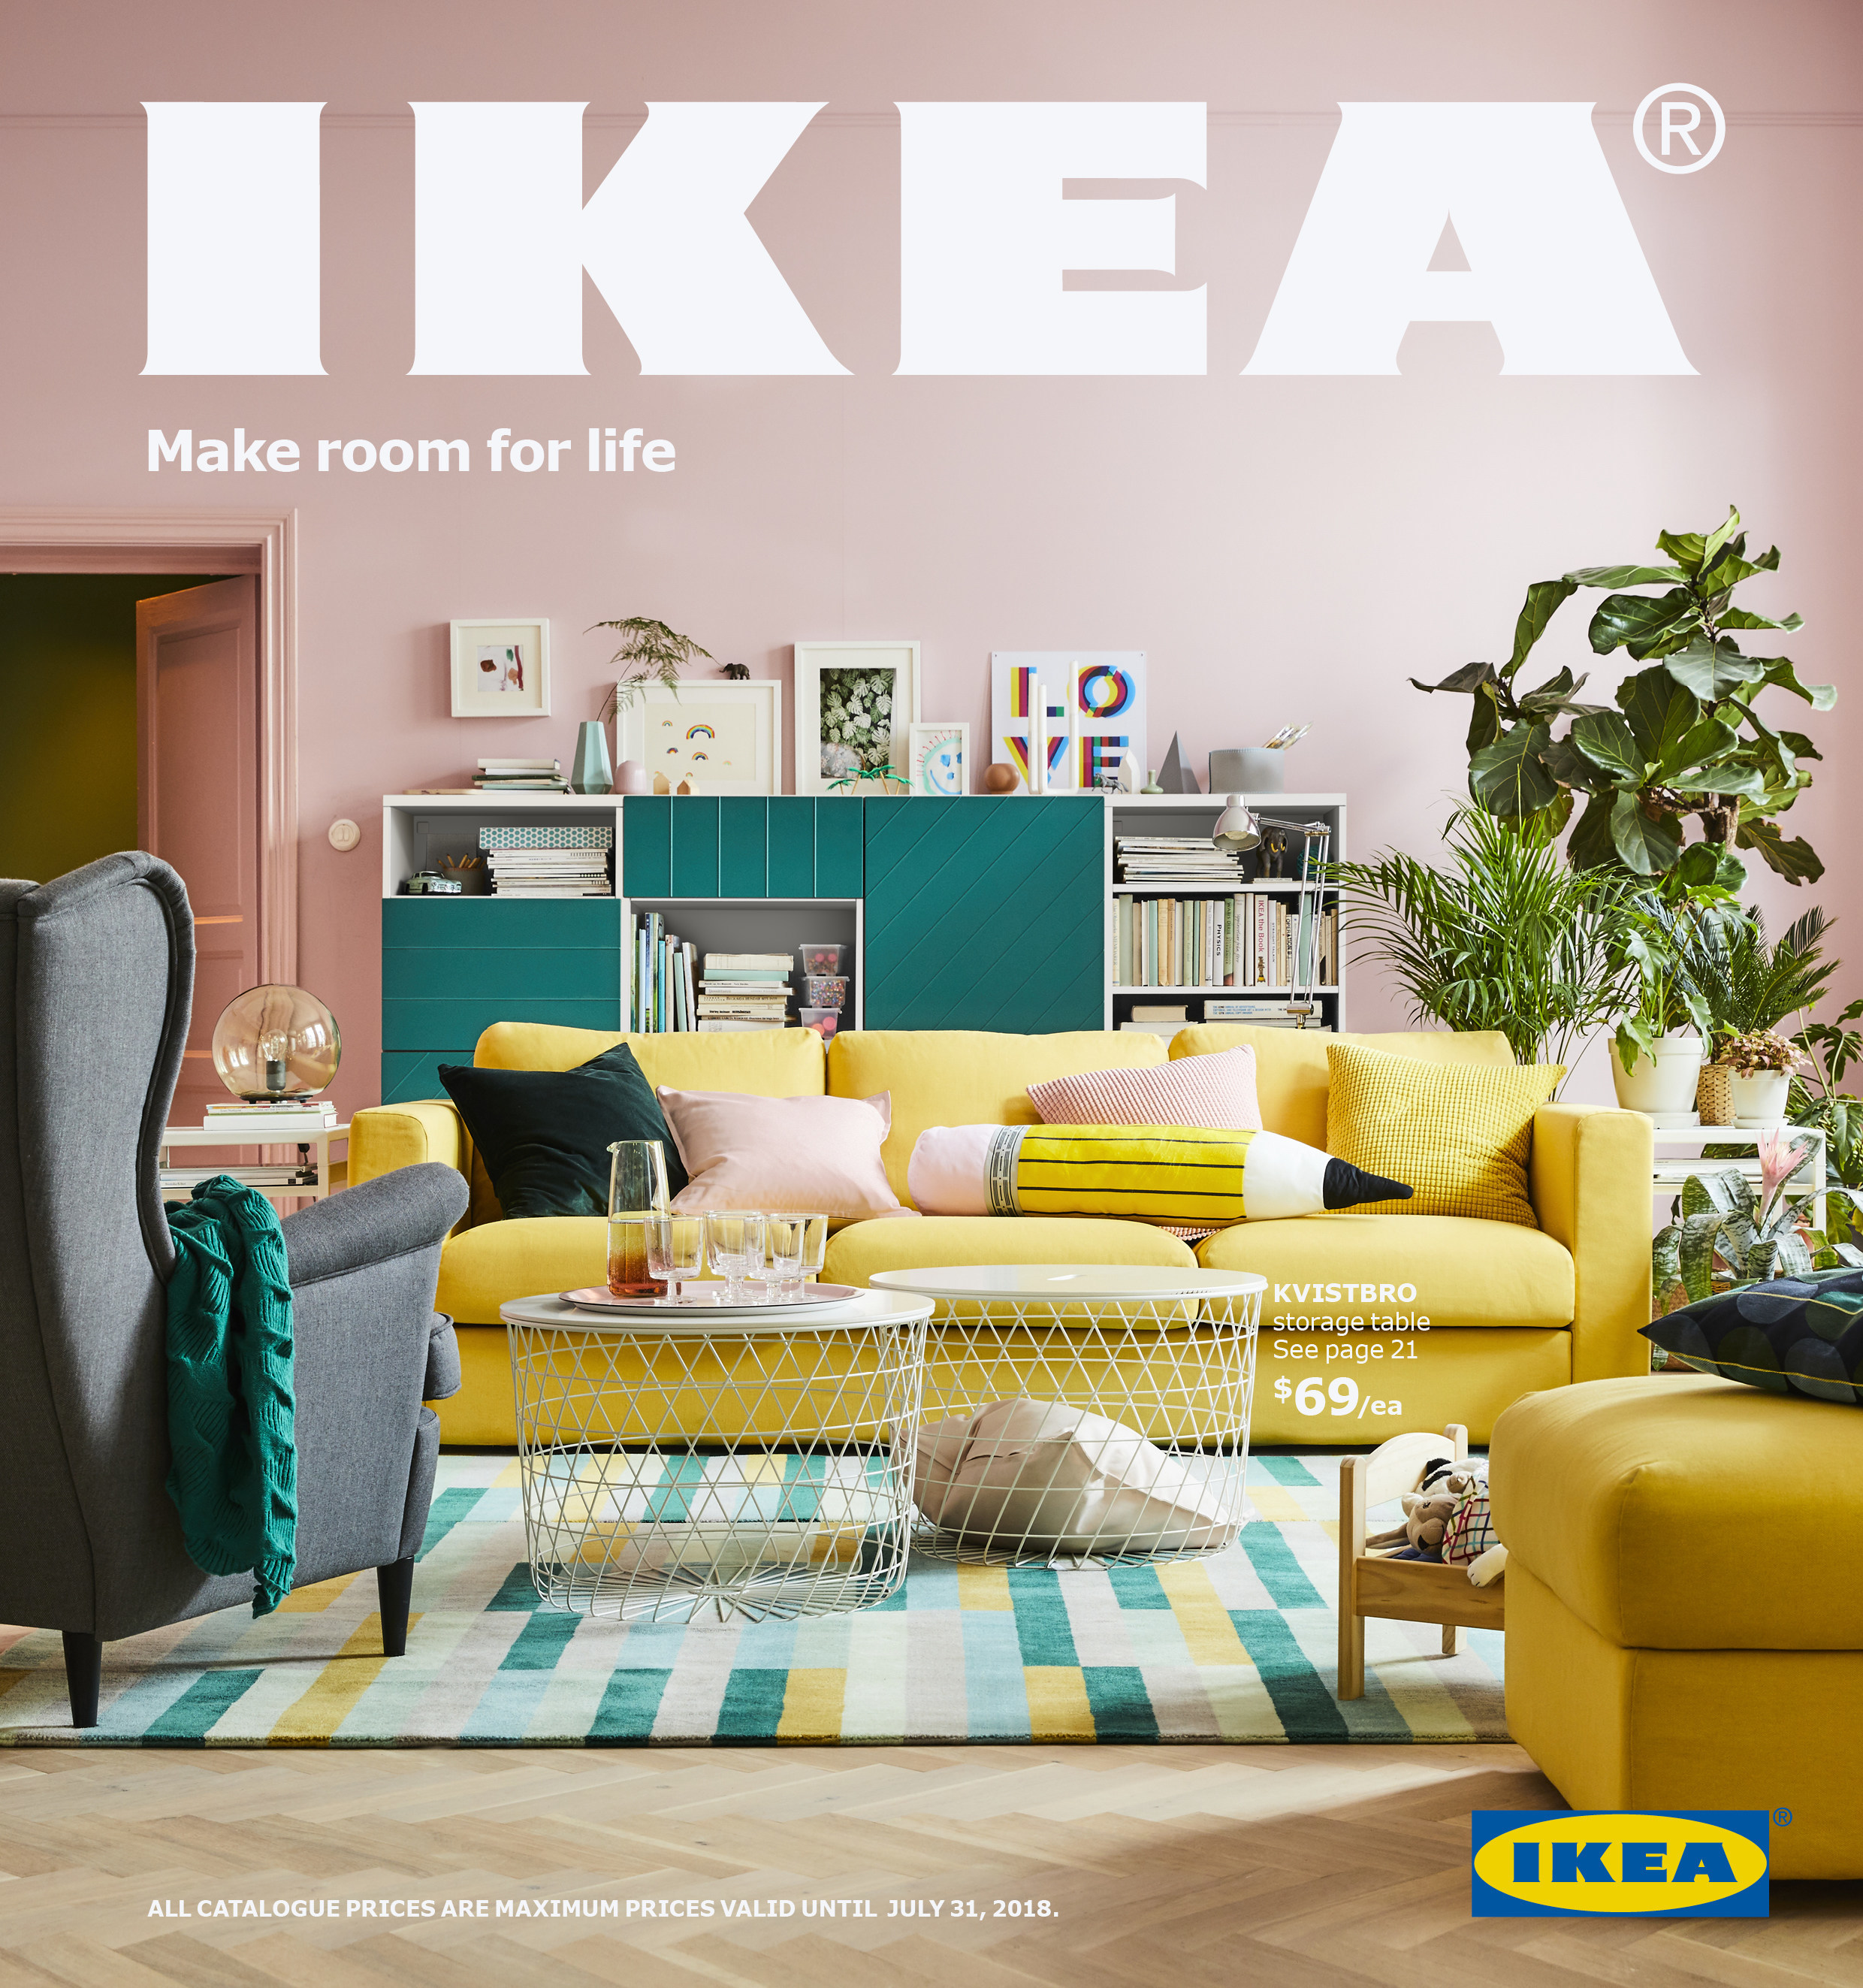 cnw 2018 ikea catalogue set to land in mailboxes across. Black Bedroom Furniture Sets. Home Design Ideas